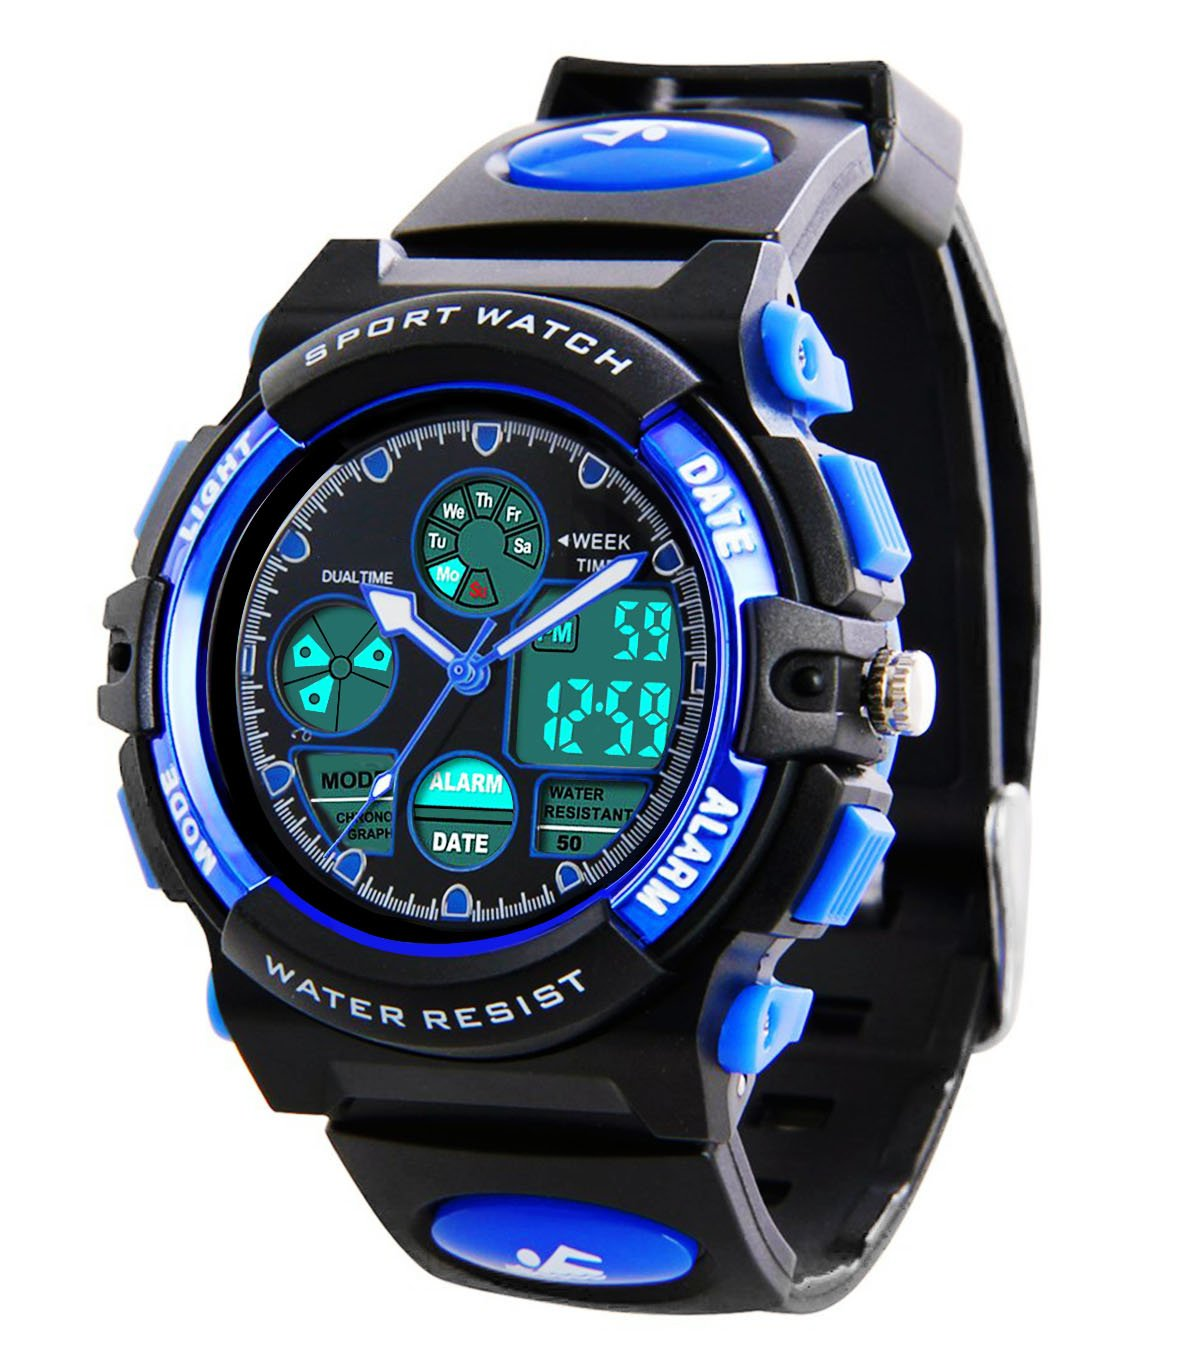 Kids Sports Digital Watch -Boys Waterproof Outdoor Analog Watch with Alarm, Wrist Watches for Childrens by MSVEW